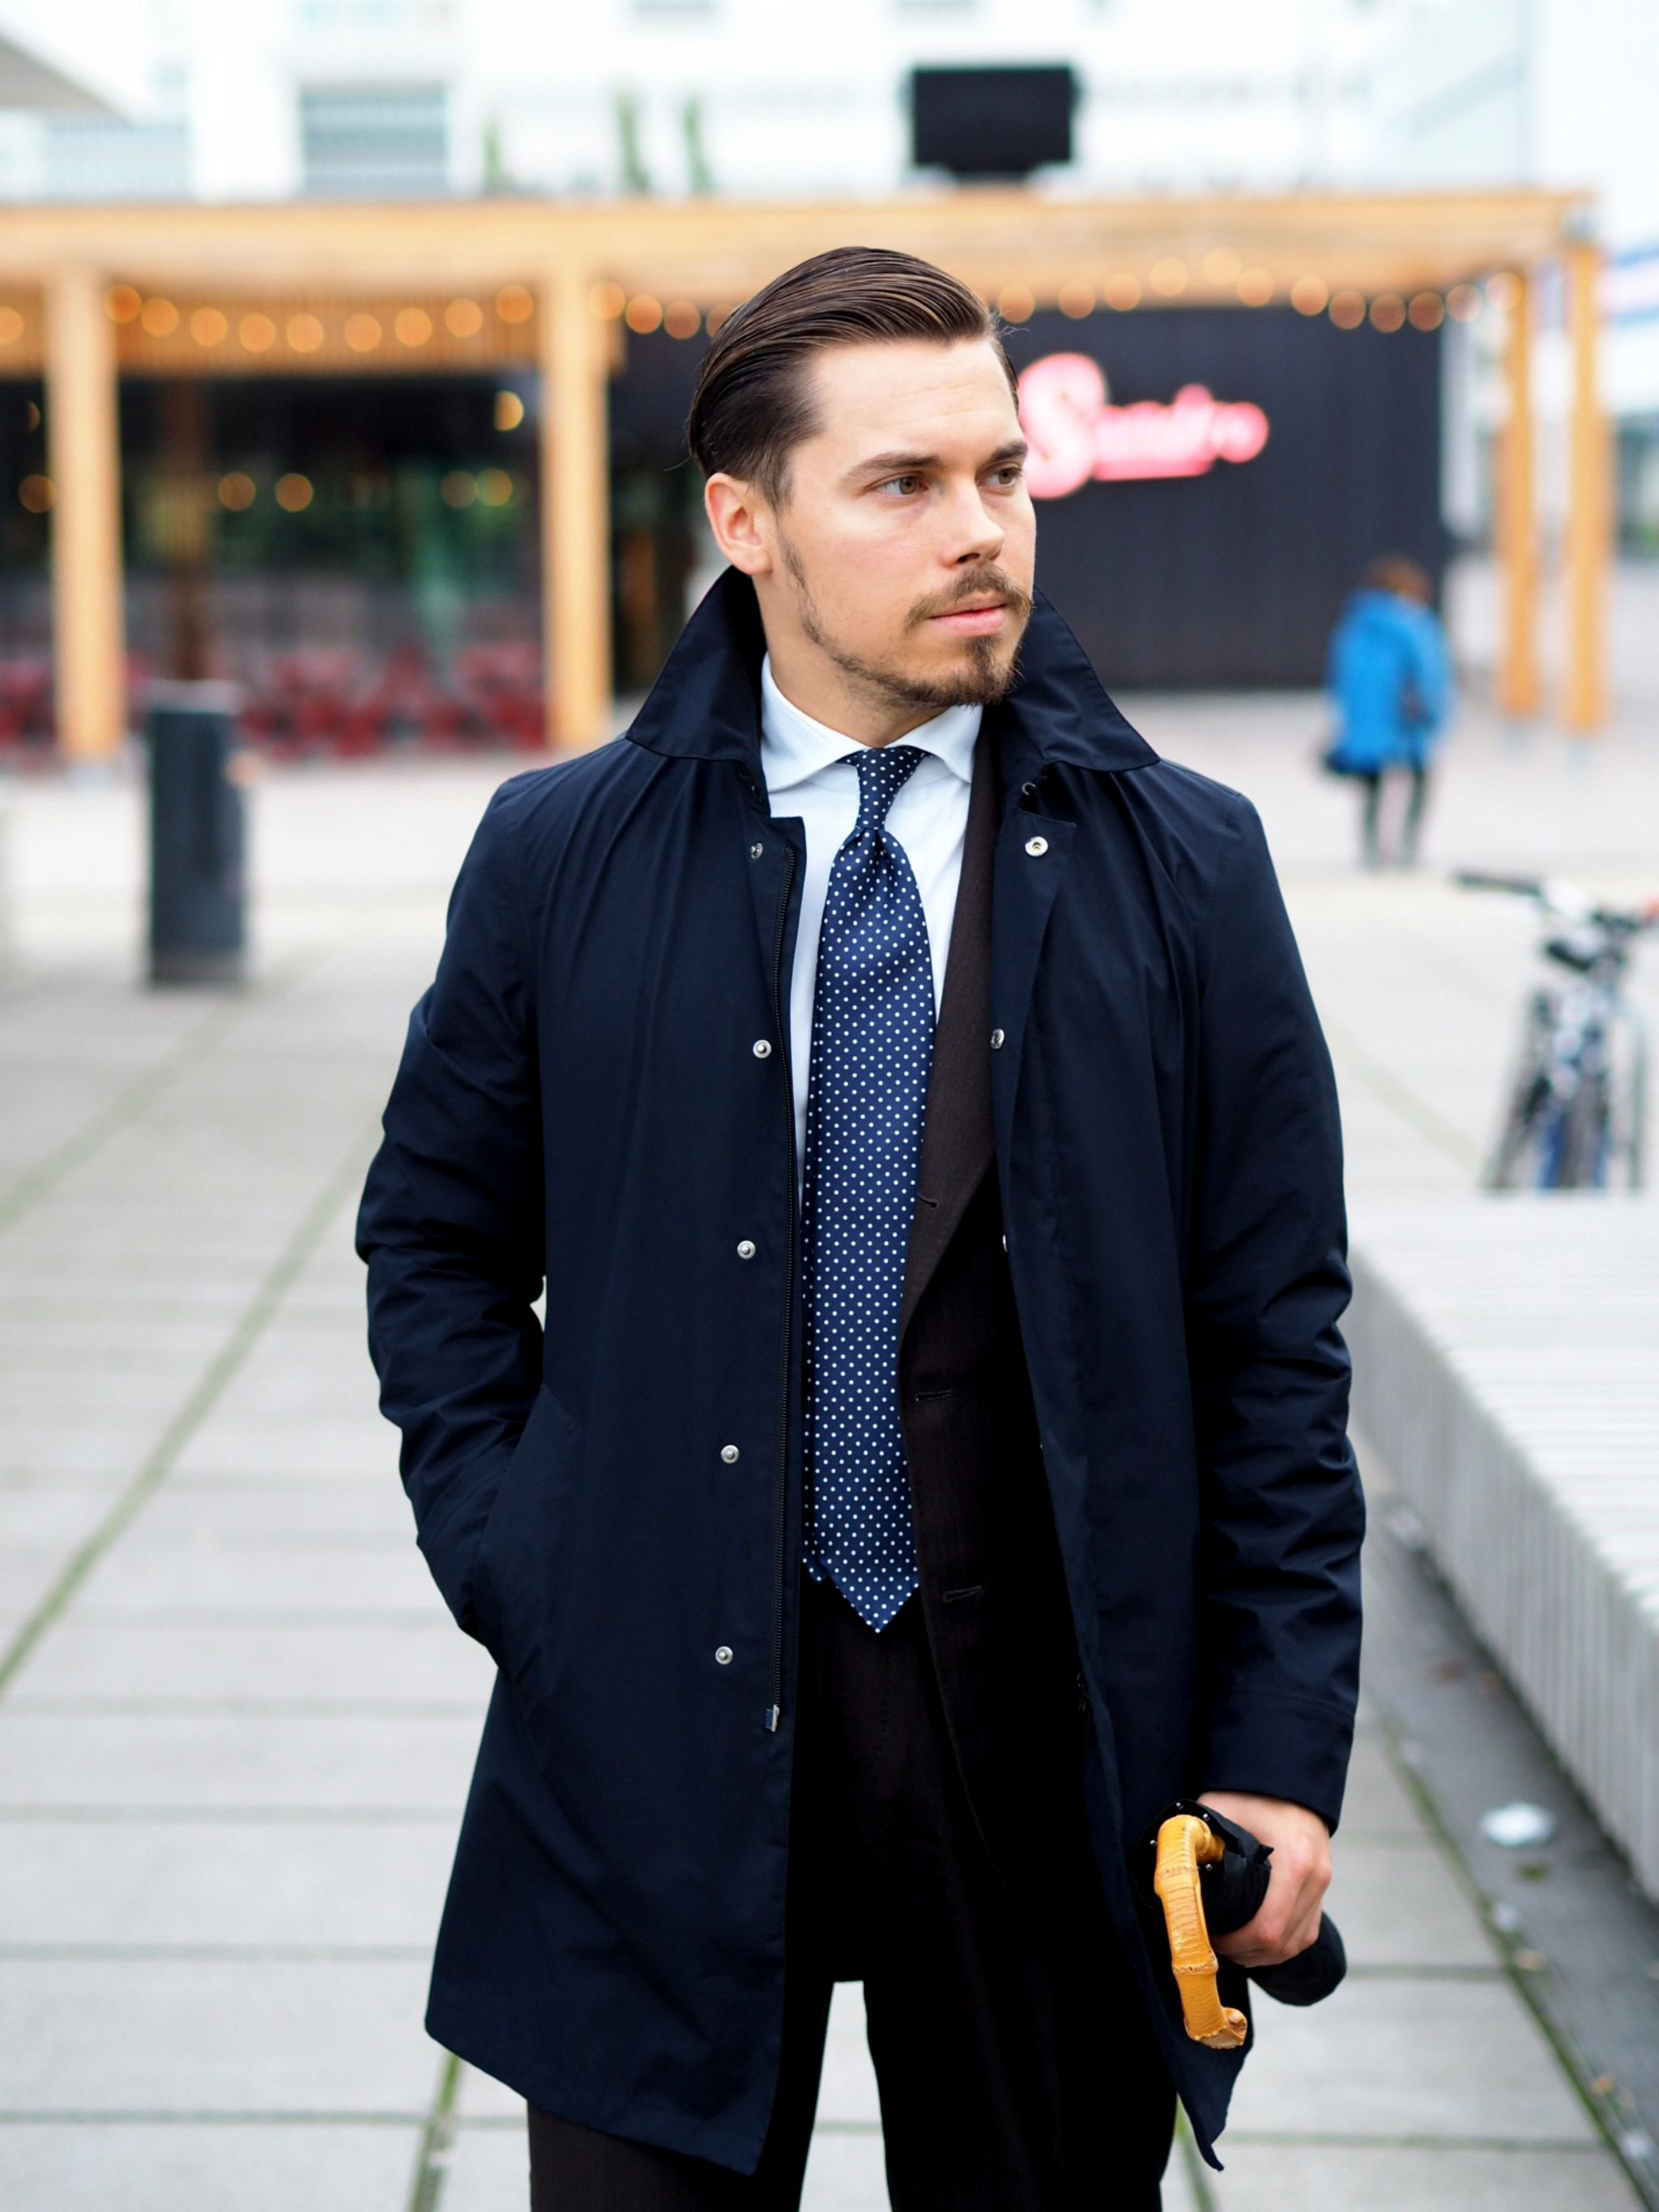 The classic navy blue rain mac with business suit